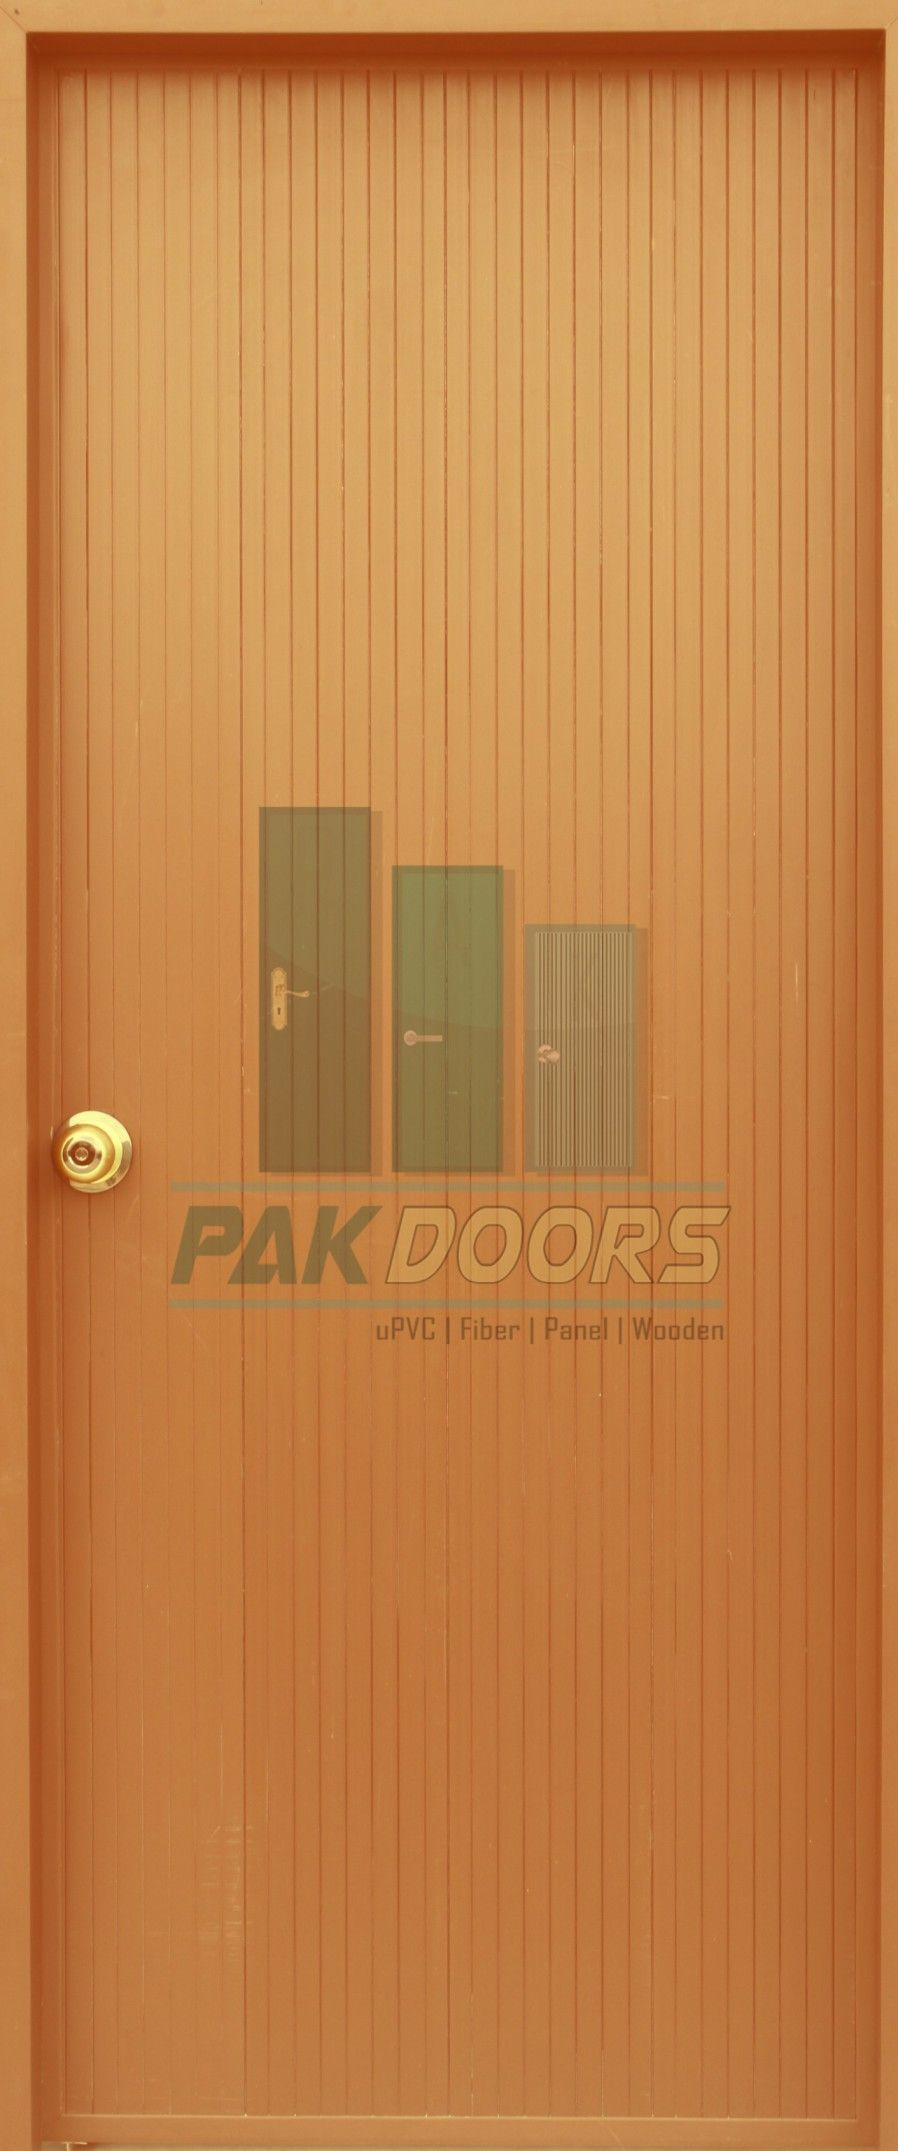 uPVC Plastic Door Dealer in Pakistan | Pvc door, Door design, Upvc